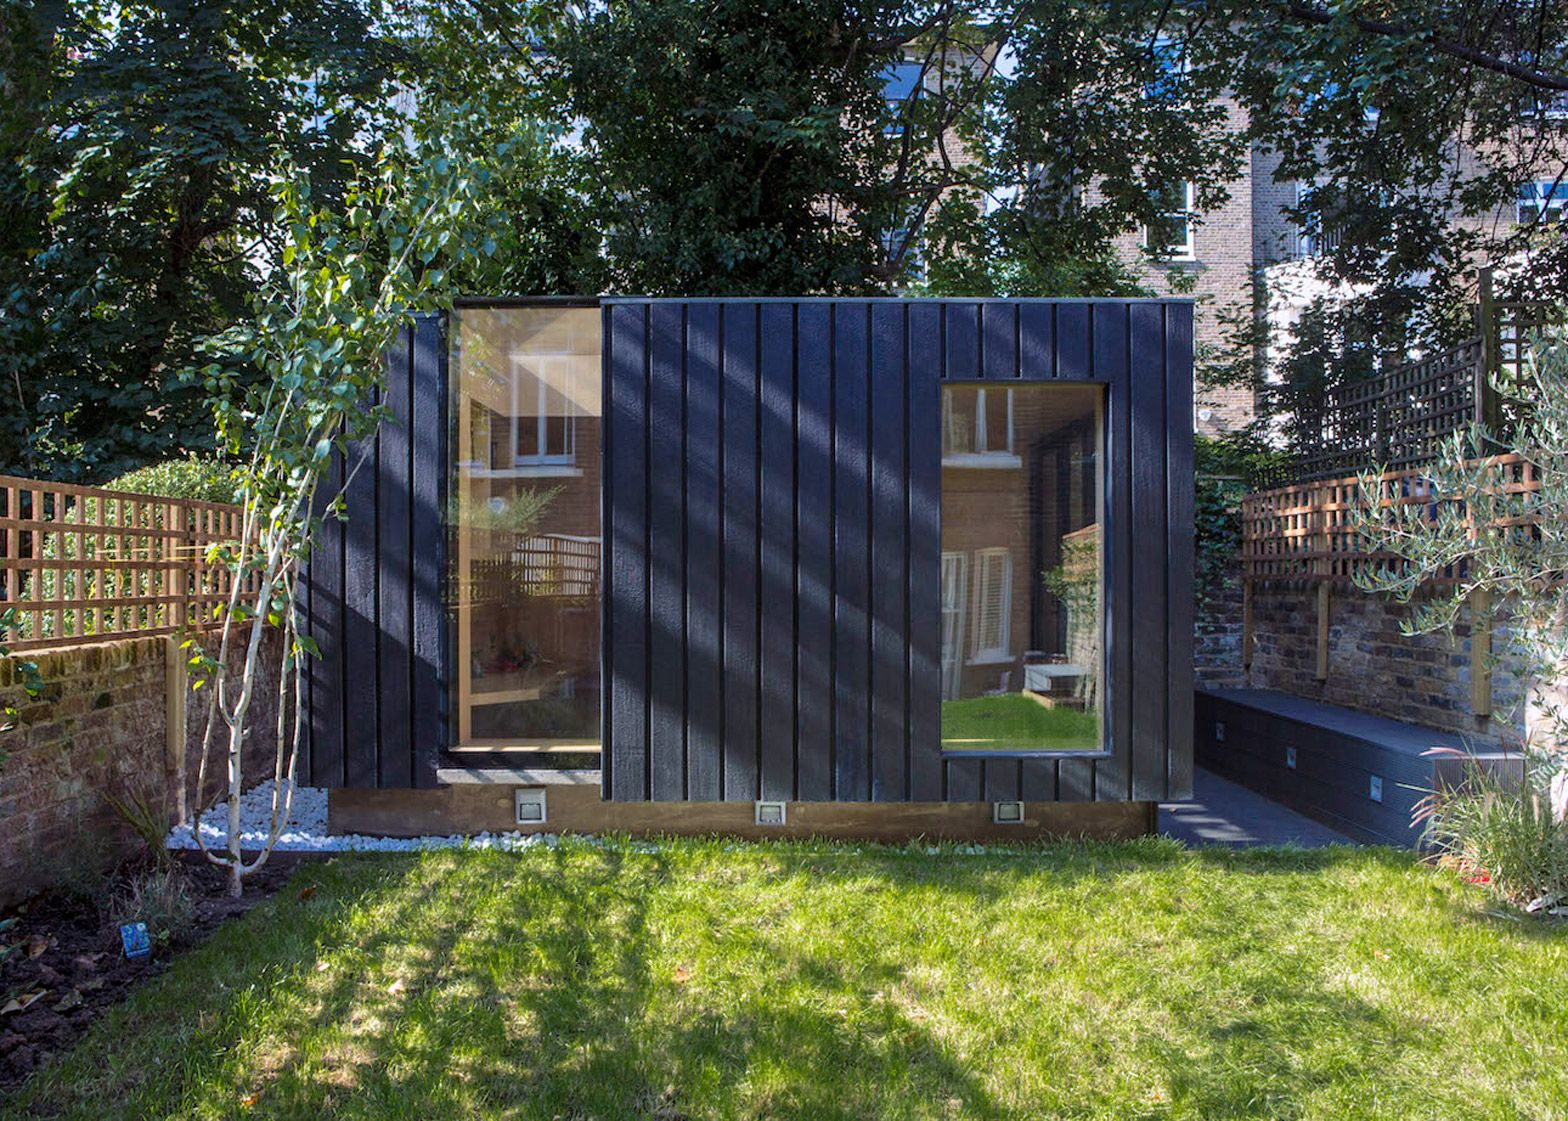 Massage therapy studio contemporary garden rooms by harrison james - Charred Cedar Clads The Exterior Of This Garden Room That Architect Neil Dusheiko Designed As An